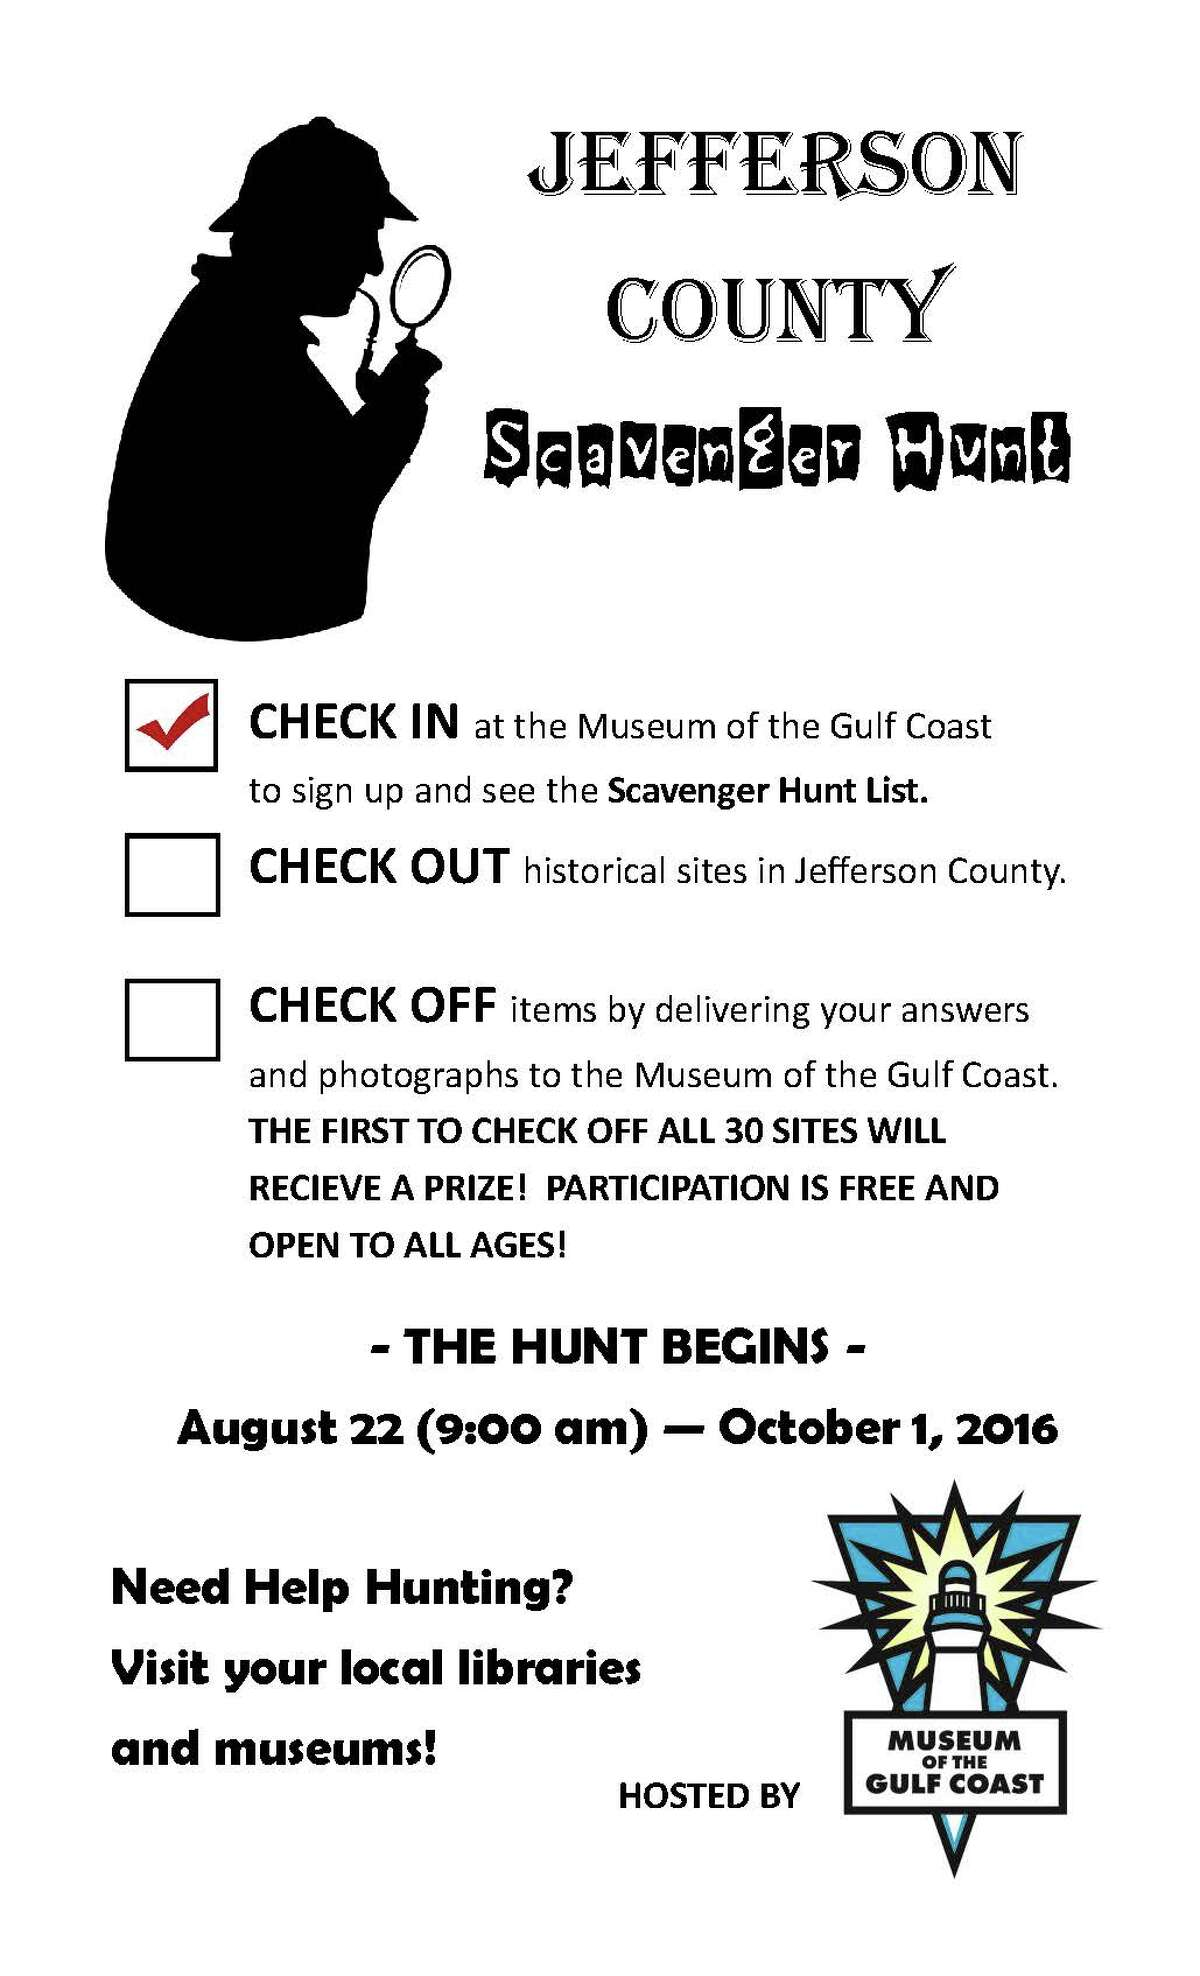 The Museum of the Gulf Coast and The Jefferson County Historical Commission will host the Jefferson County scavenger hunt to promote historical sites in the county.